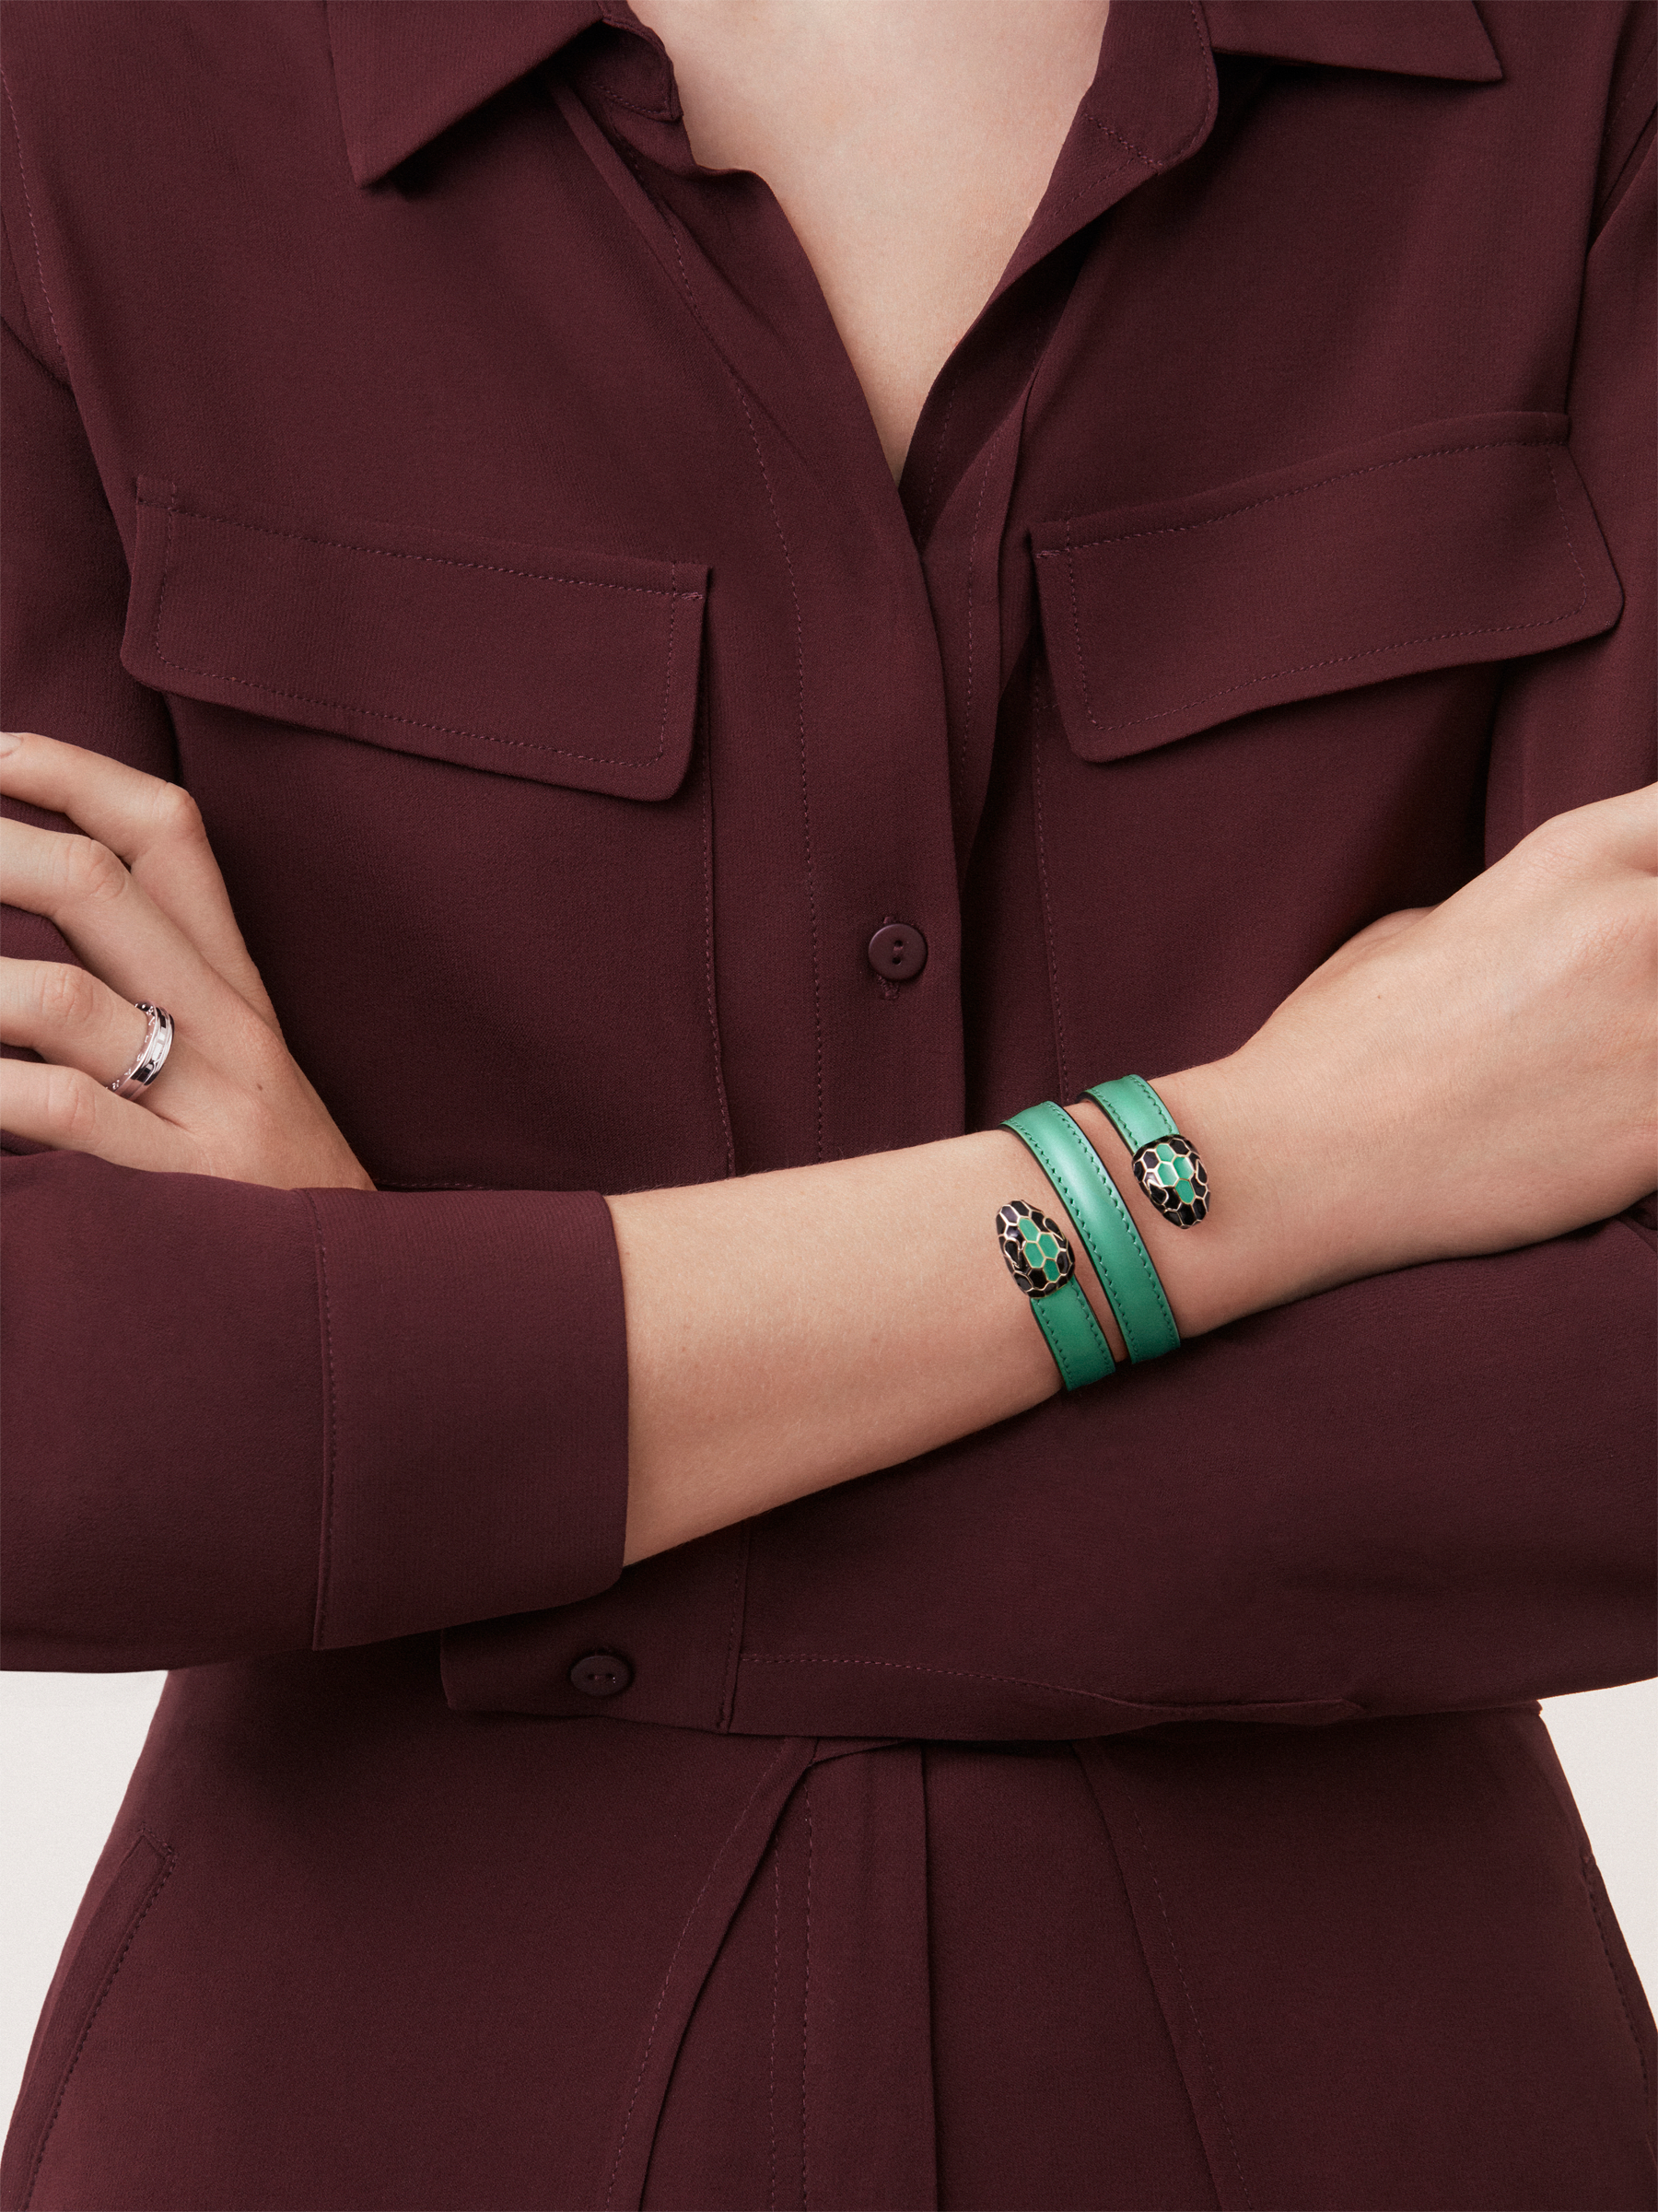 """Serpenti Forever"" multi-coiled rigid Cleopatra bracelet in emerald green calf leather, with brass light gold plated hardware. Iconic double snakehead decor enamelled in black and emerald green, finished with seductive eyes in black enamel. Cleopatra-CL-EG image 3"